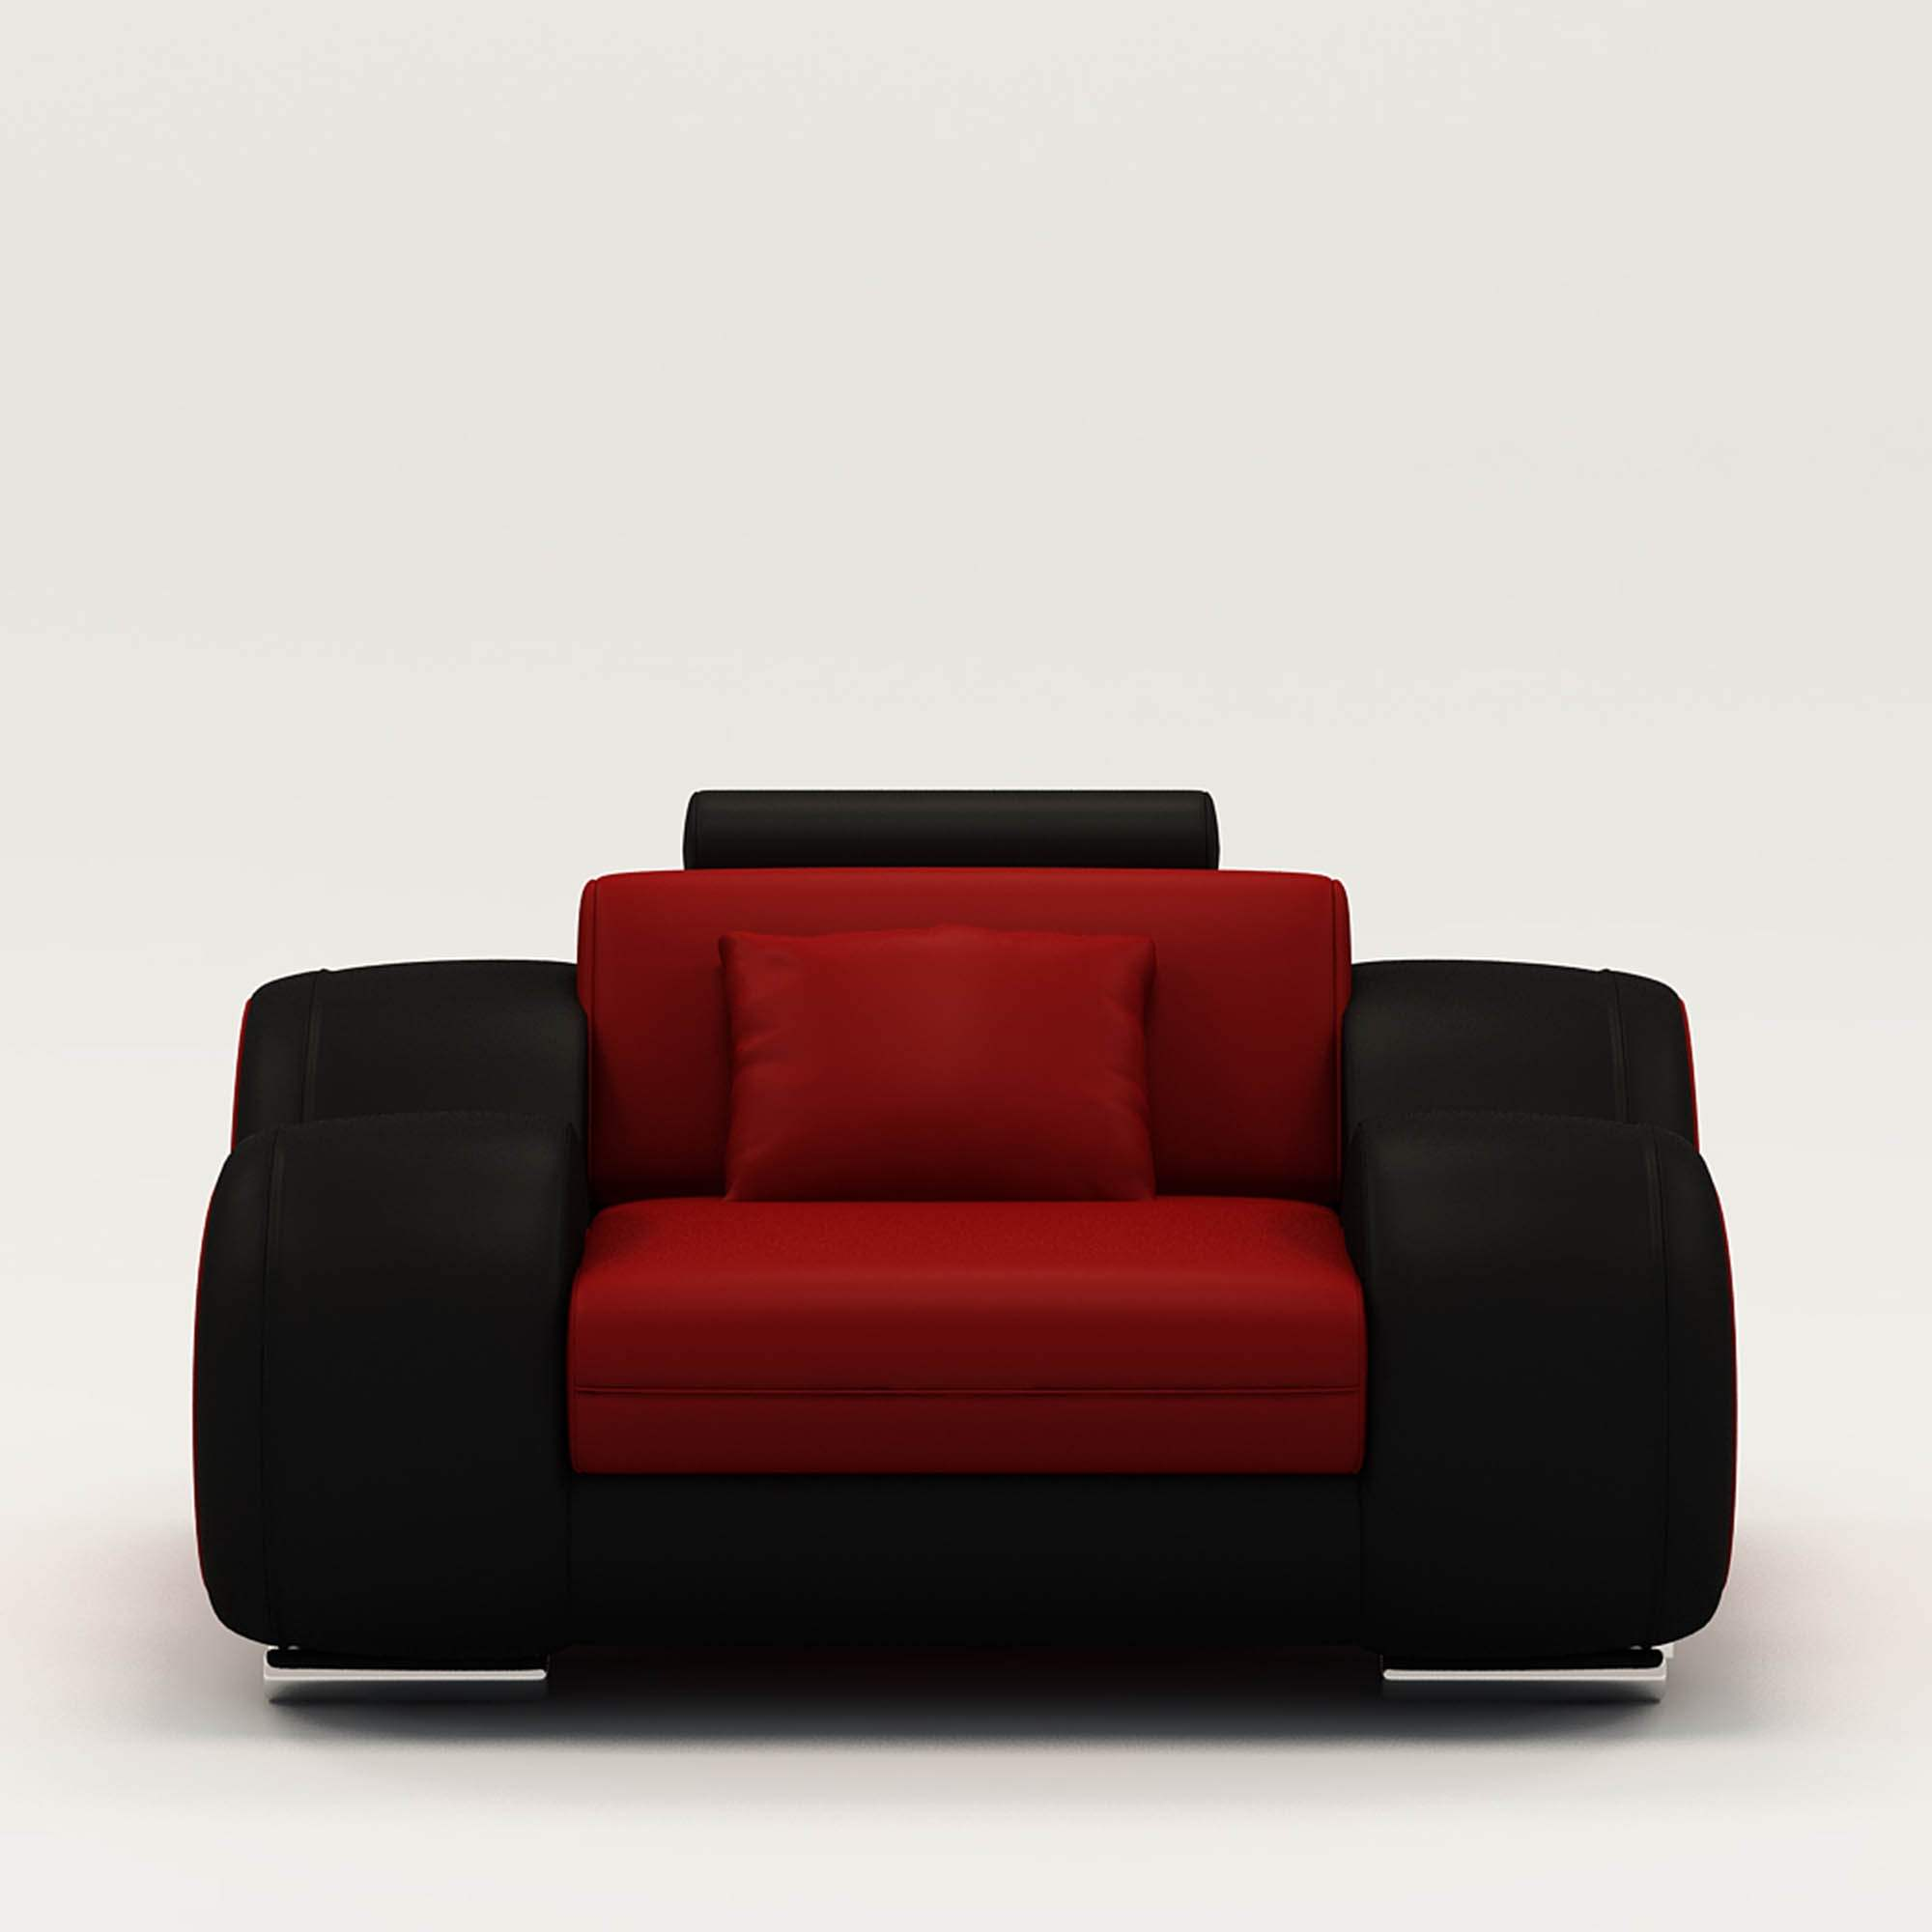 deco in paris 1 fauteuil cuir relax design rouge et noir oslo oslo 1pl rouge noir. Black Bedroom Furniture Sets. Home Design Ideas